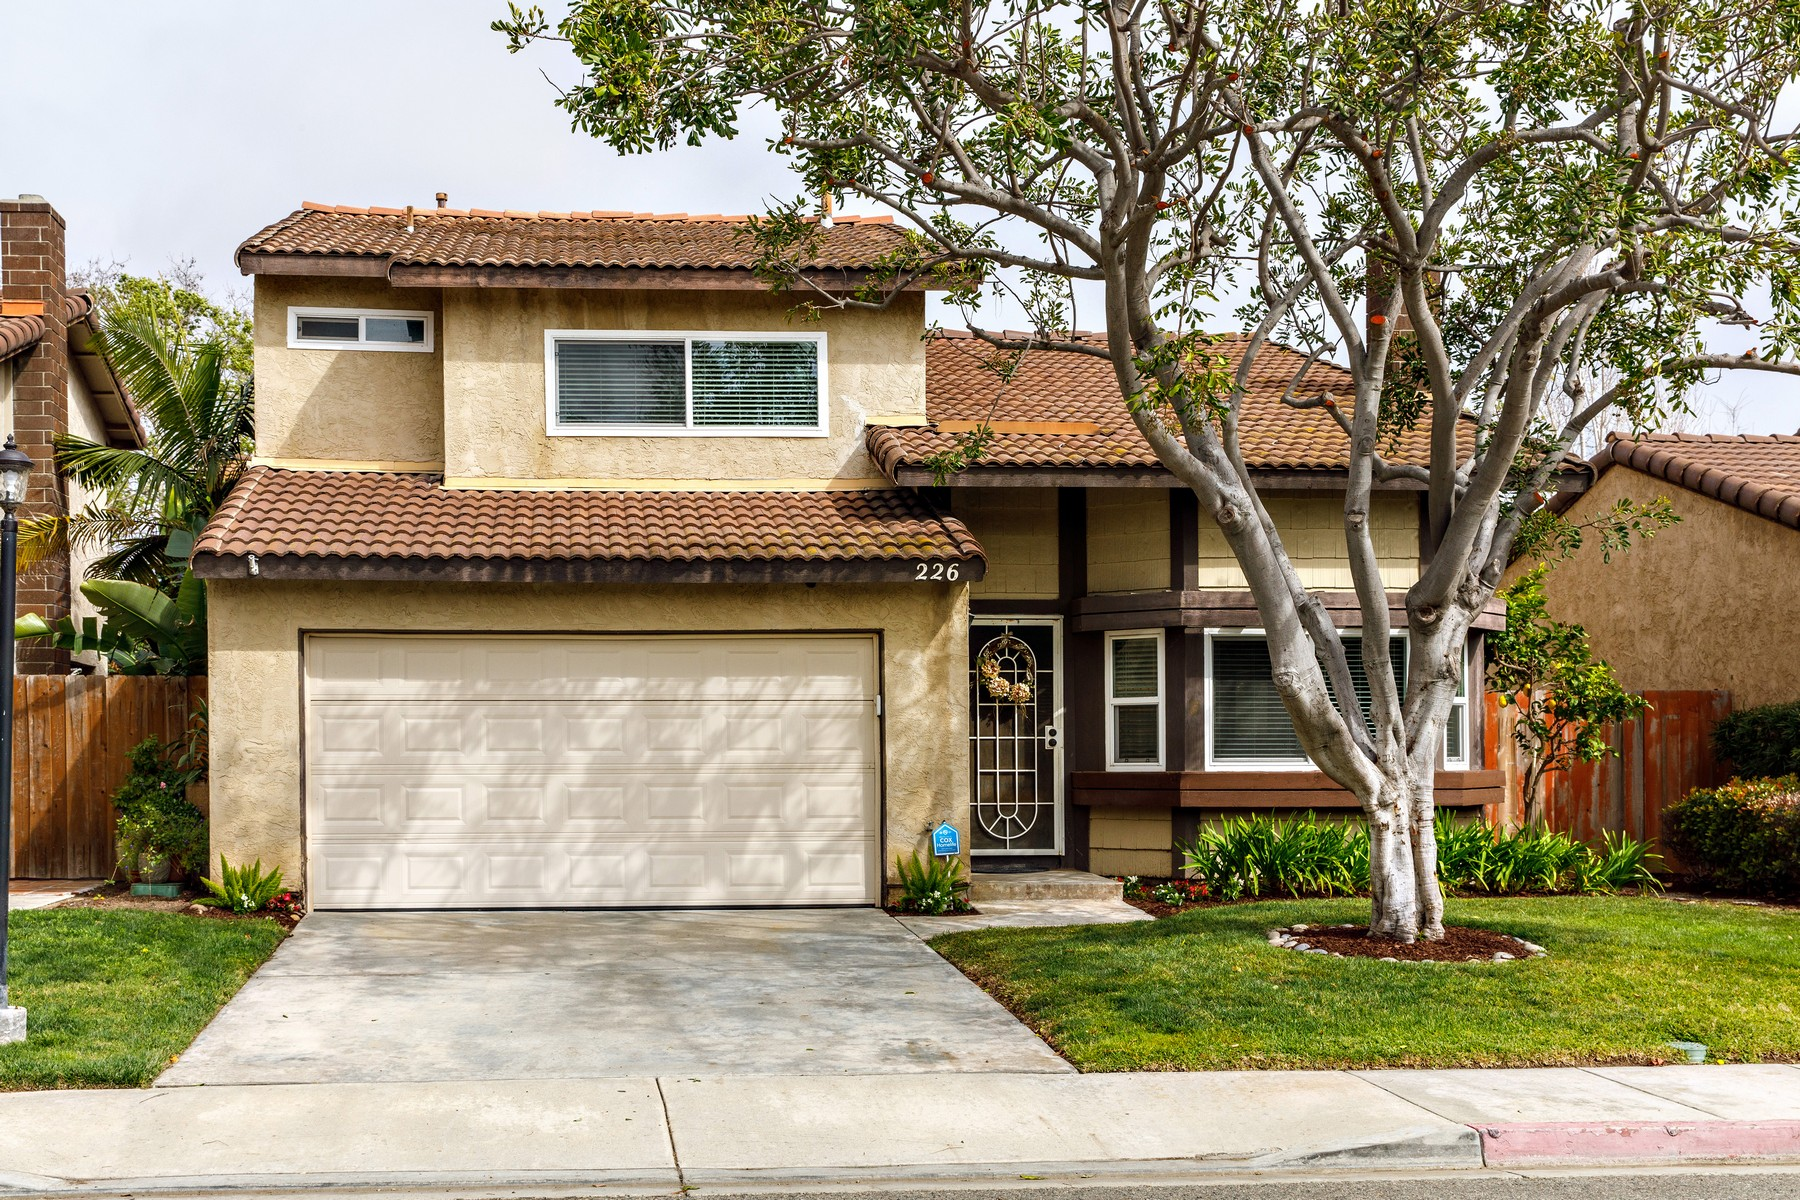 Single Family Home for Sale at 226 Levant Way 226 Levant Way Oceanside, California 92057 United States